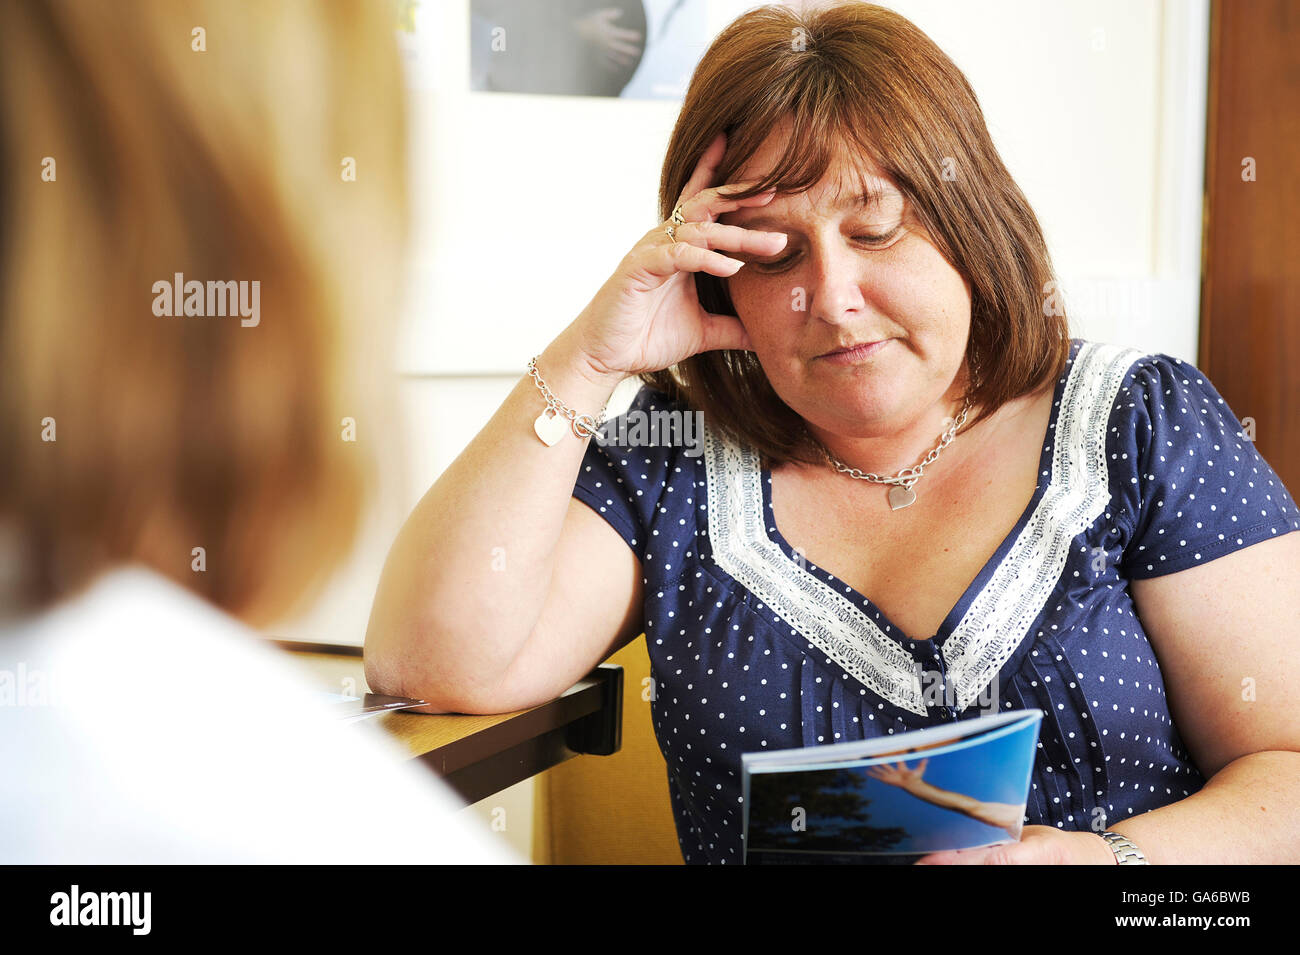 Overweight and obese woman reads a stop smoking leaflet during consultation with health advisor at NHS drop in centre - Stock Image